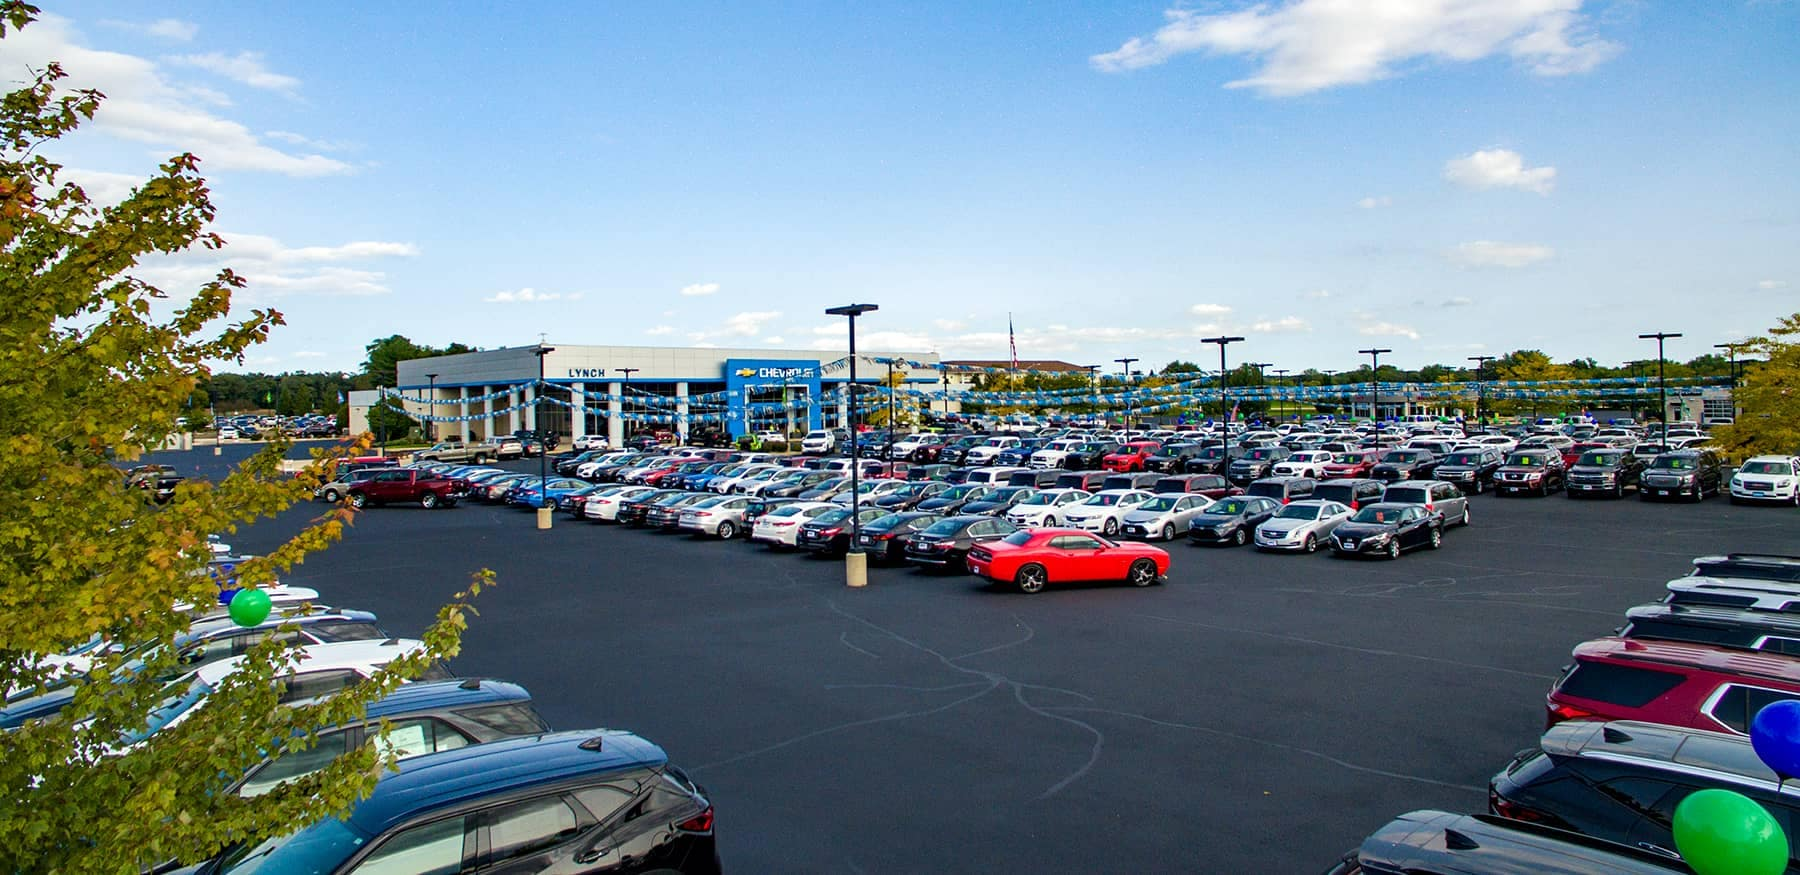 Lynch GM Superstore dealership lot of cars